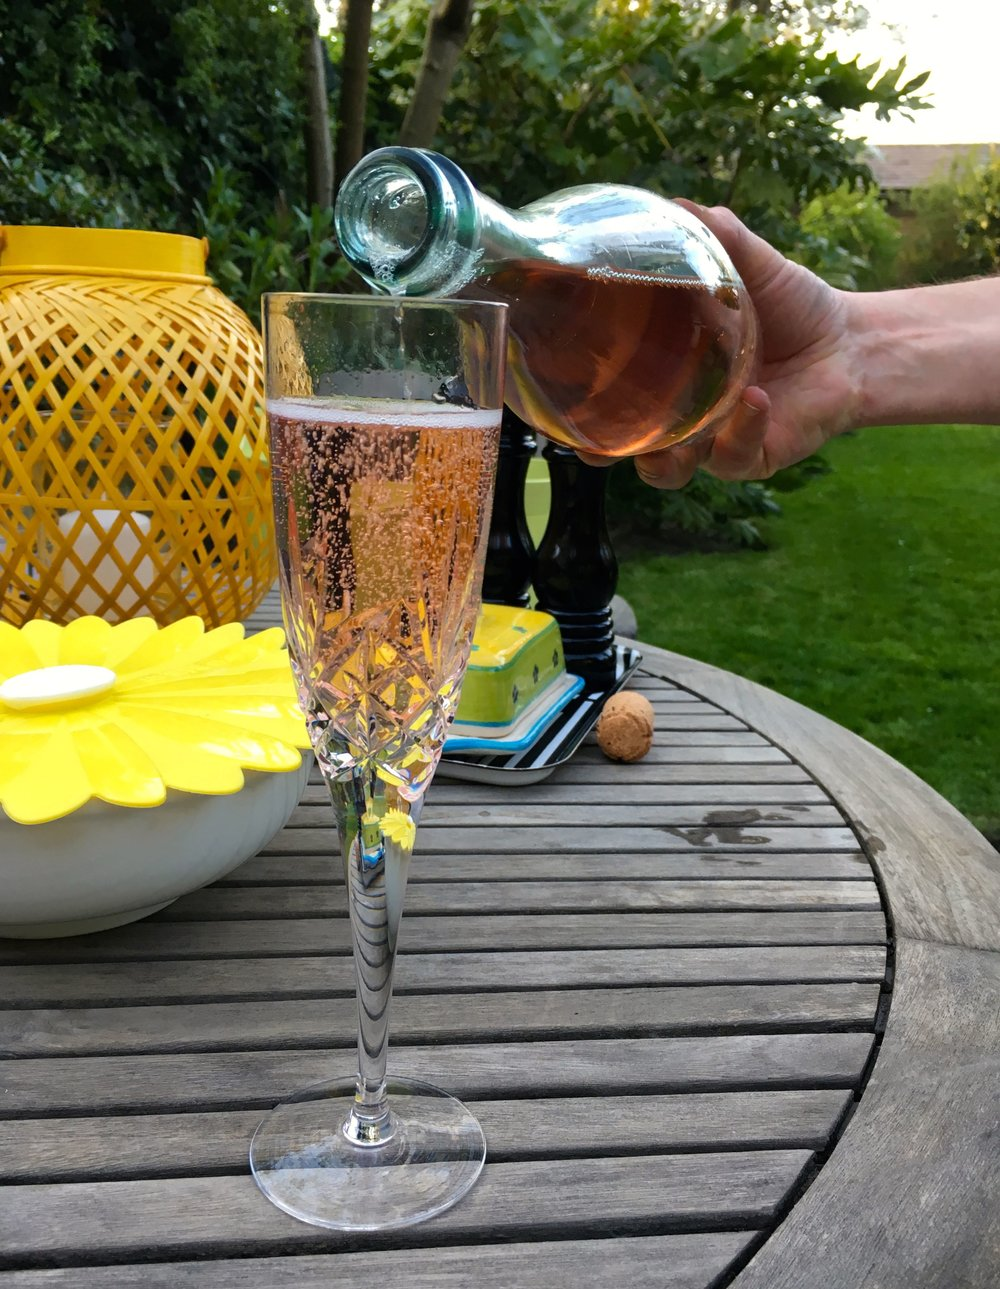 Ah that's more like it, being waited on with rose prosecco